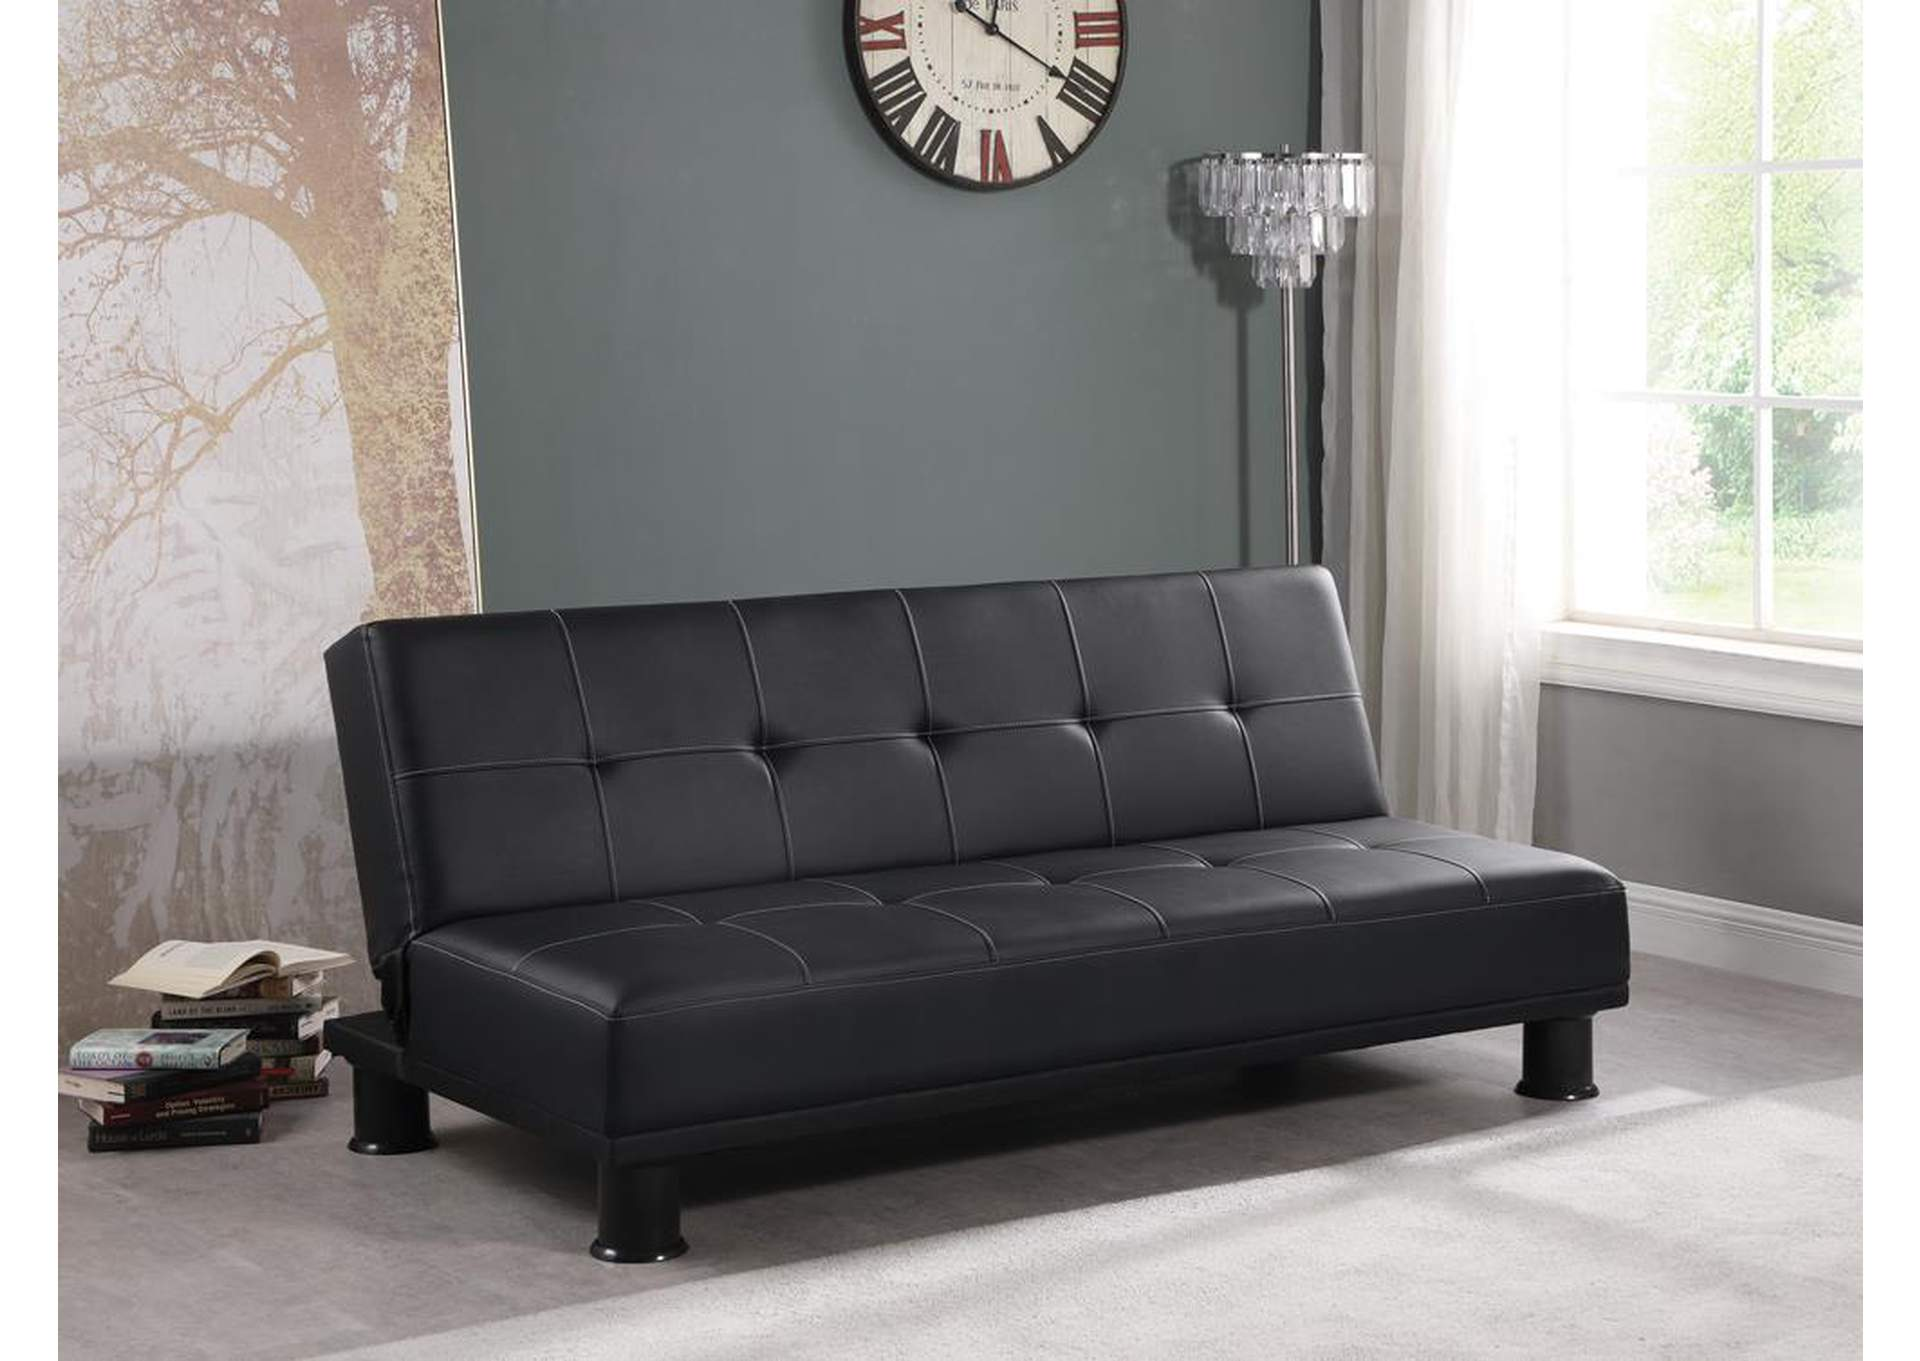 Jamie S Interiors Williamsburg Woodbine Ky Black Sofa Bed